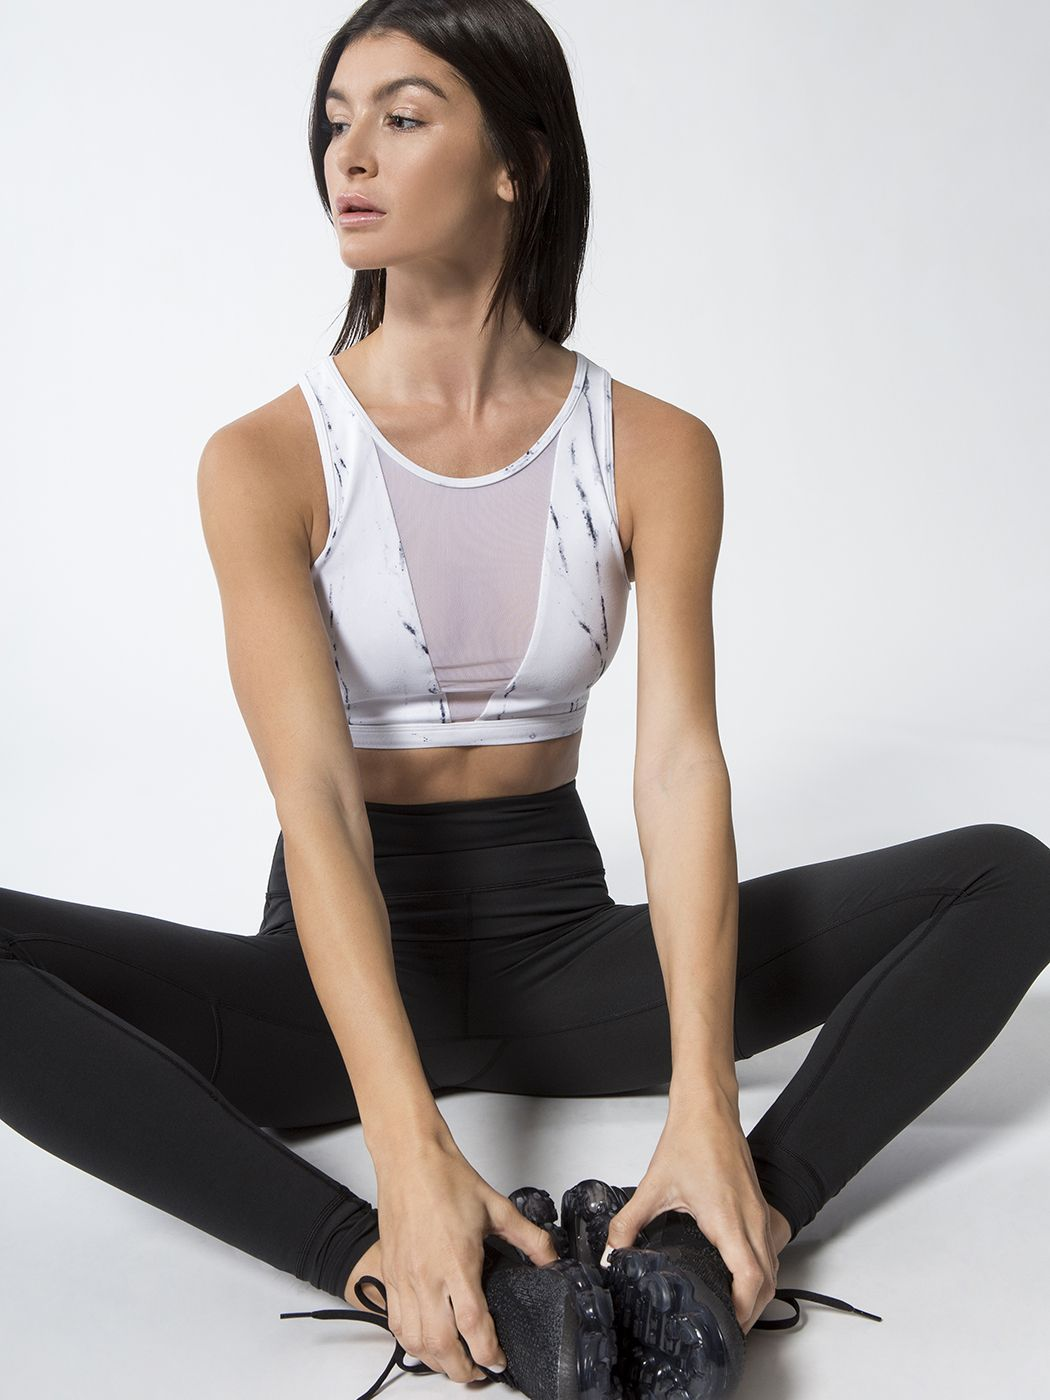 Terri Medium Support Sport Bra in Ink Marble by Varley from Carbon38